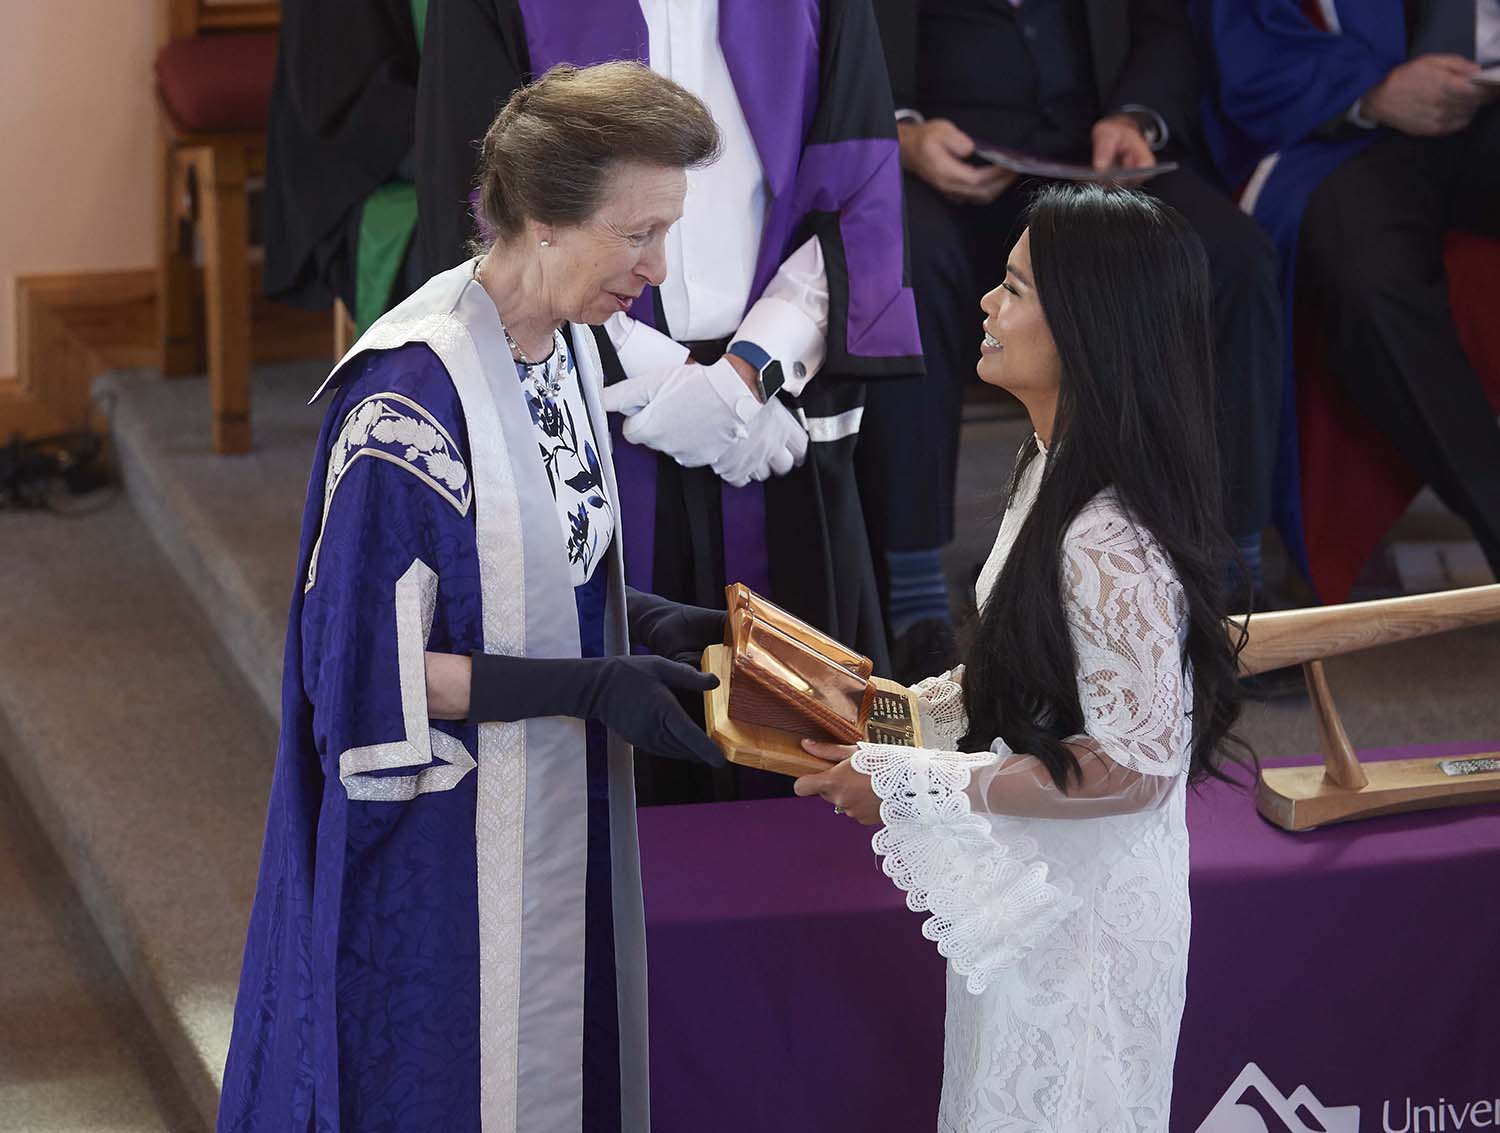 HRH The Princess Royal to attend Perth College UHI graduation